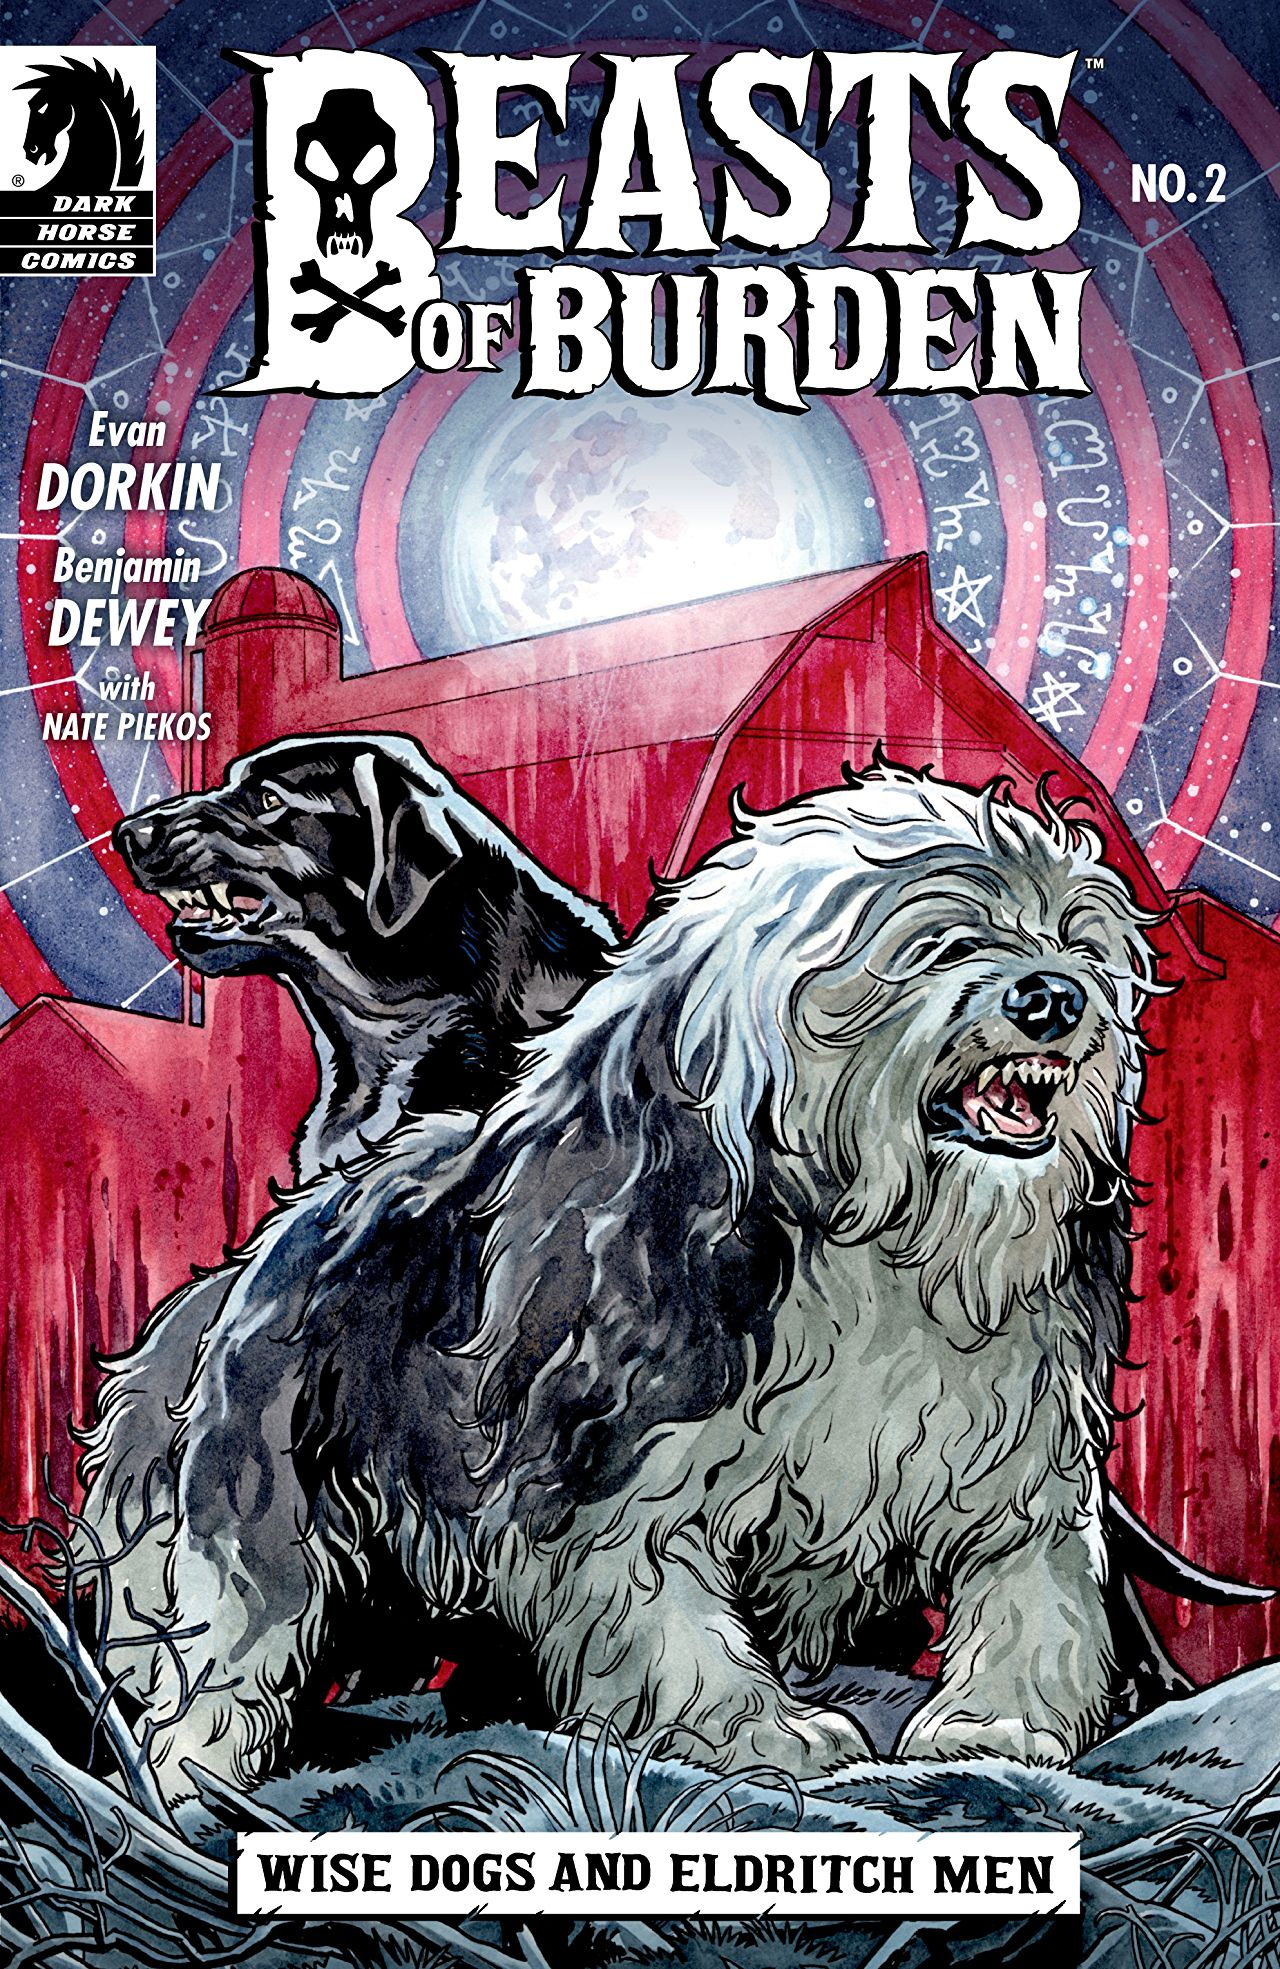 Beasts of Burden: Wise Dogs and Eldritch Men #2 Review